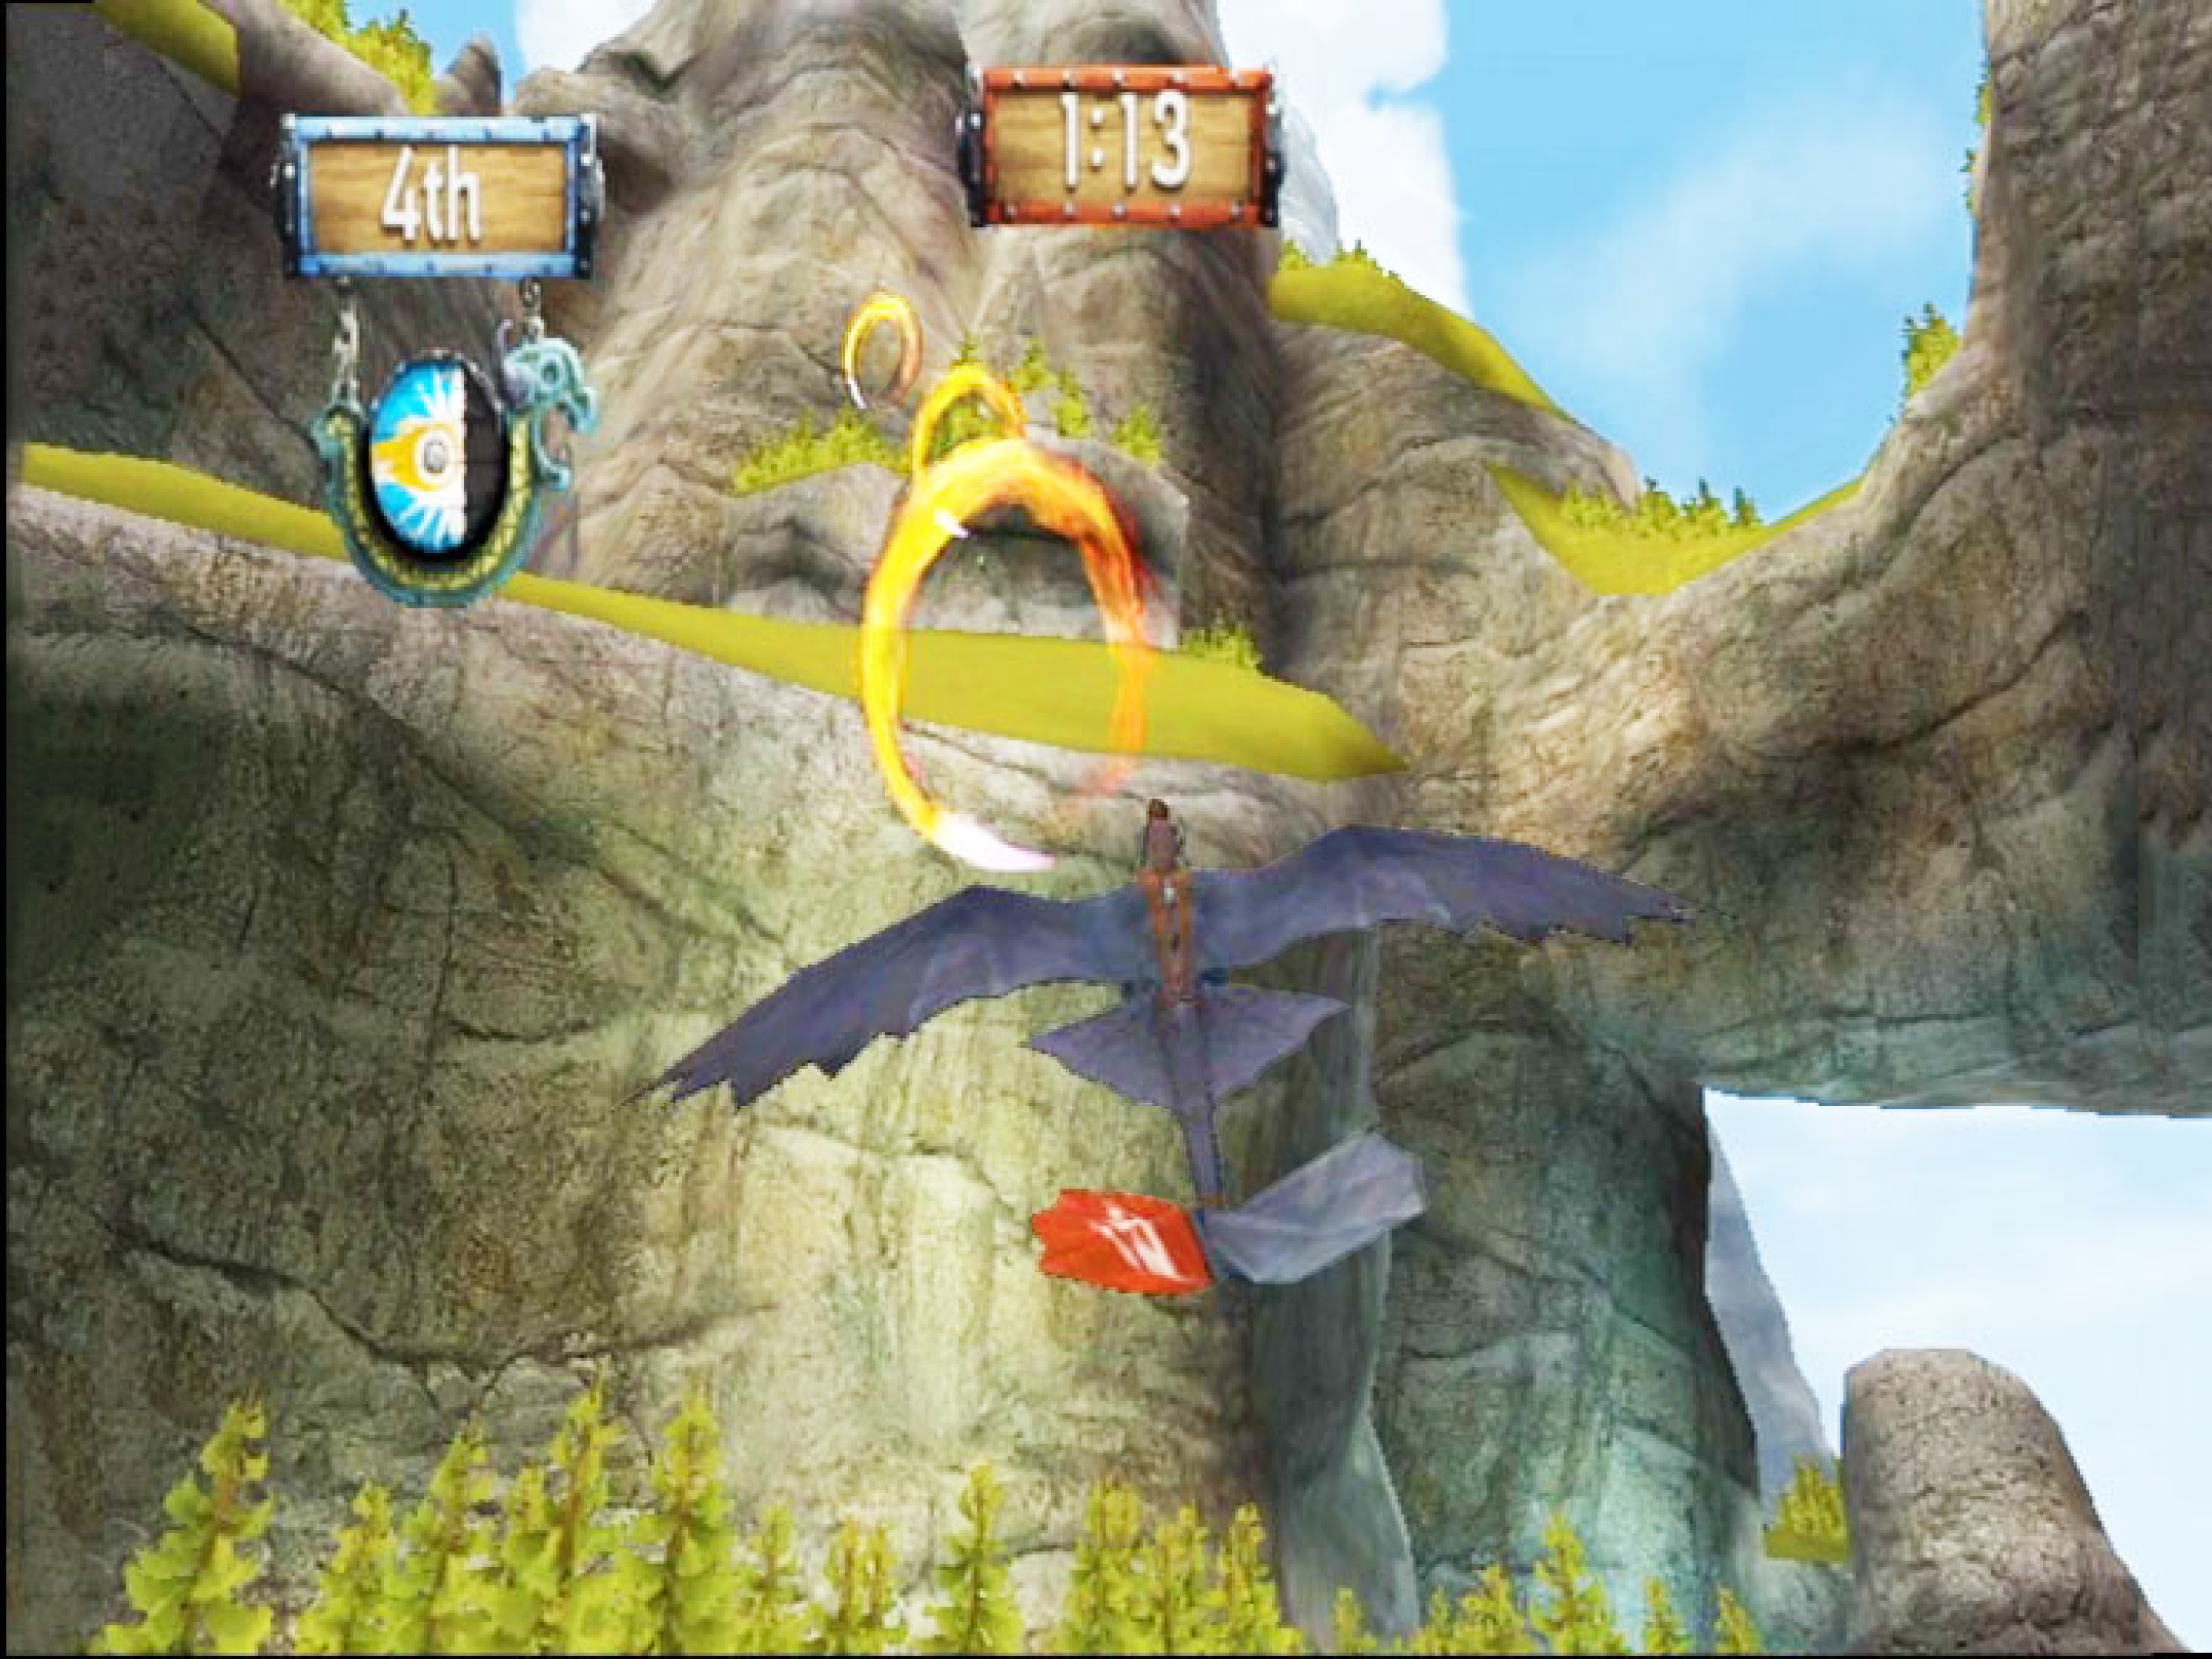 Pr little orbit to publish how to train your dragon 2 video games become the ultimate dragon rider this june on the xbox 360 3ds wii wii u and playstation 3 santa ana ca march 18 2014 little orbit ccuart Choice Image